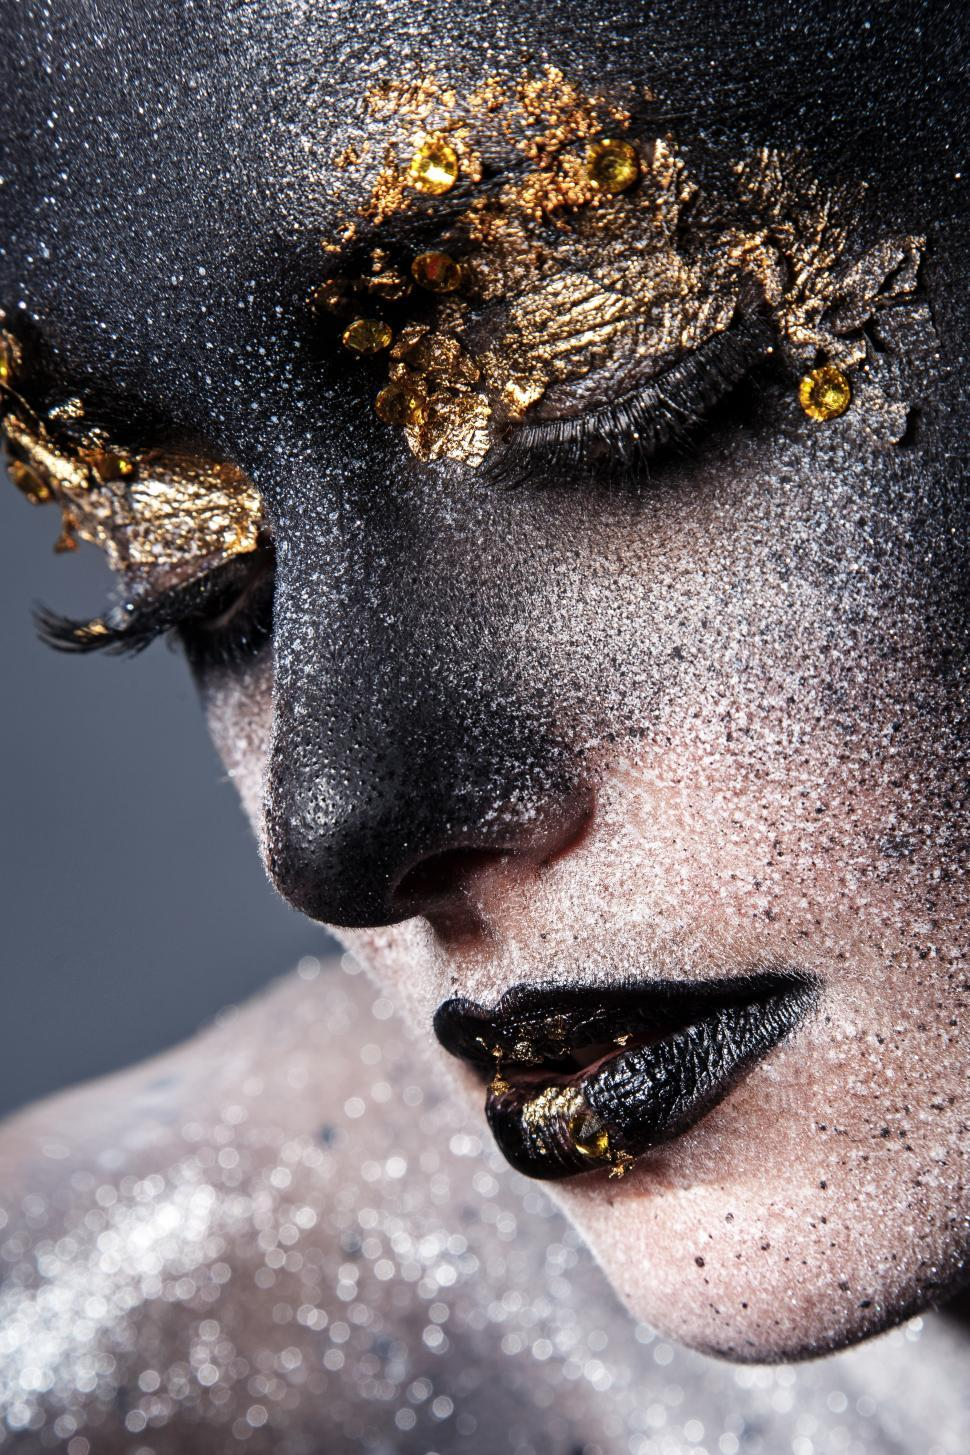 Download Free Stock Photo of Beautiful black and white and gold, artistic makeup